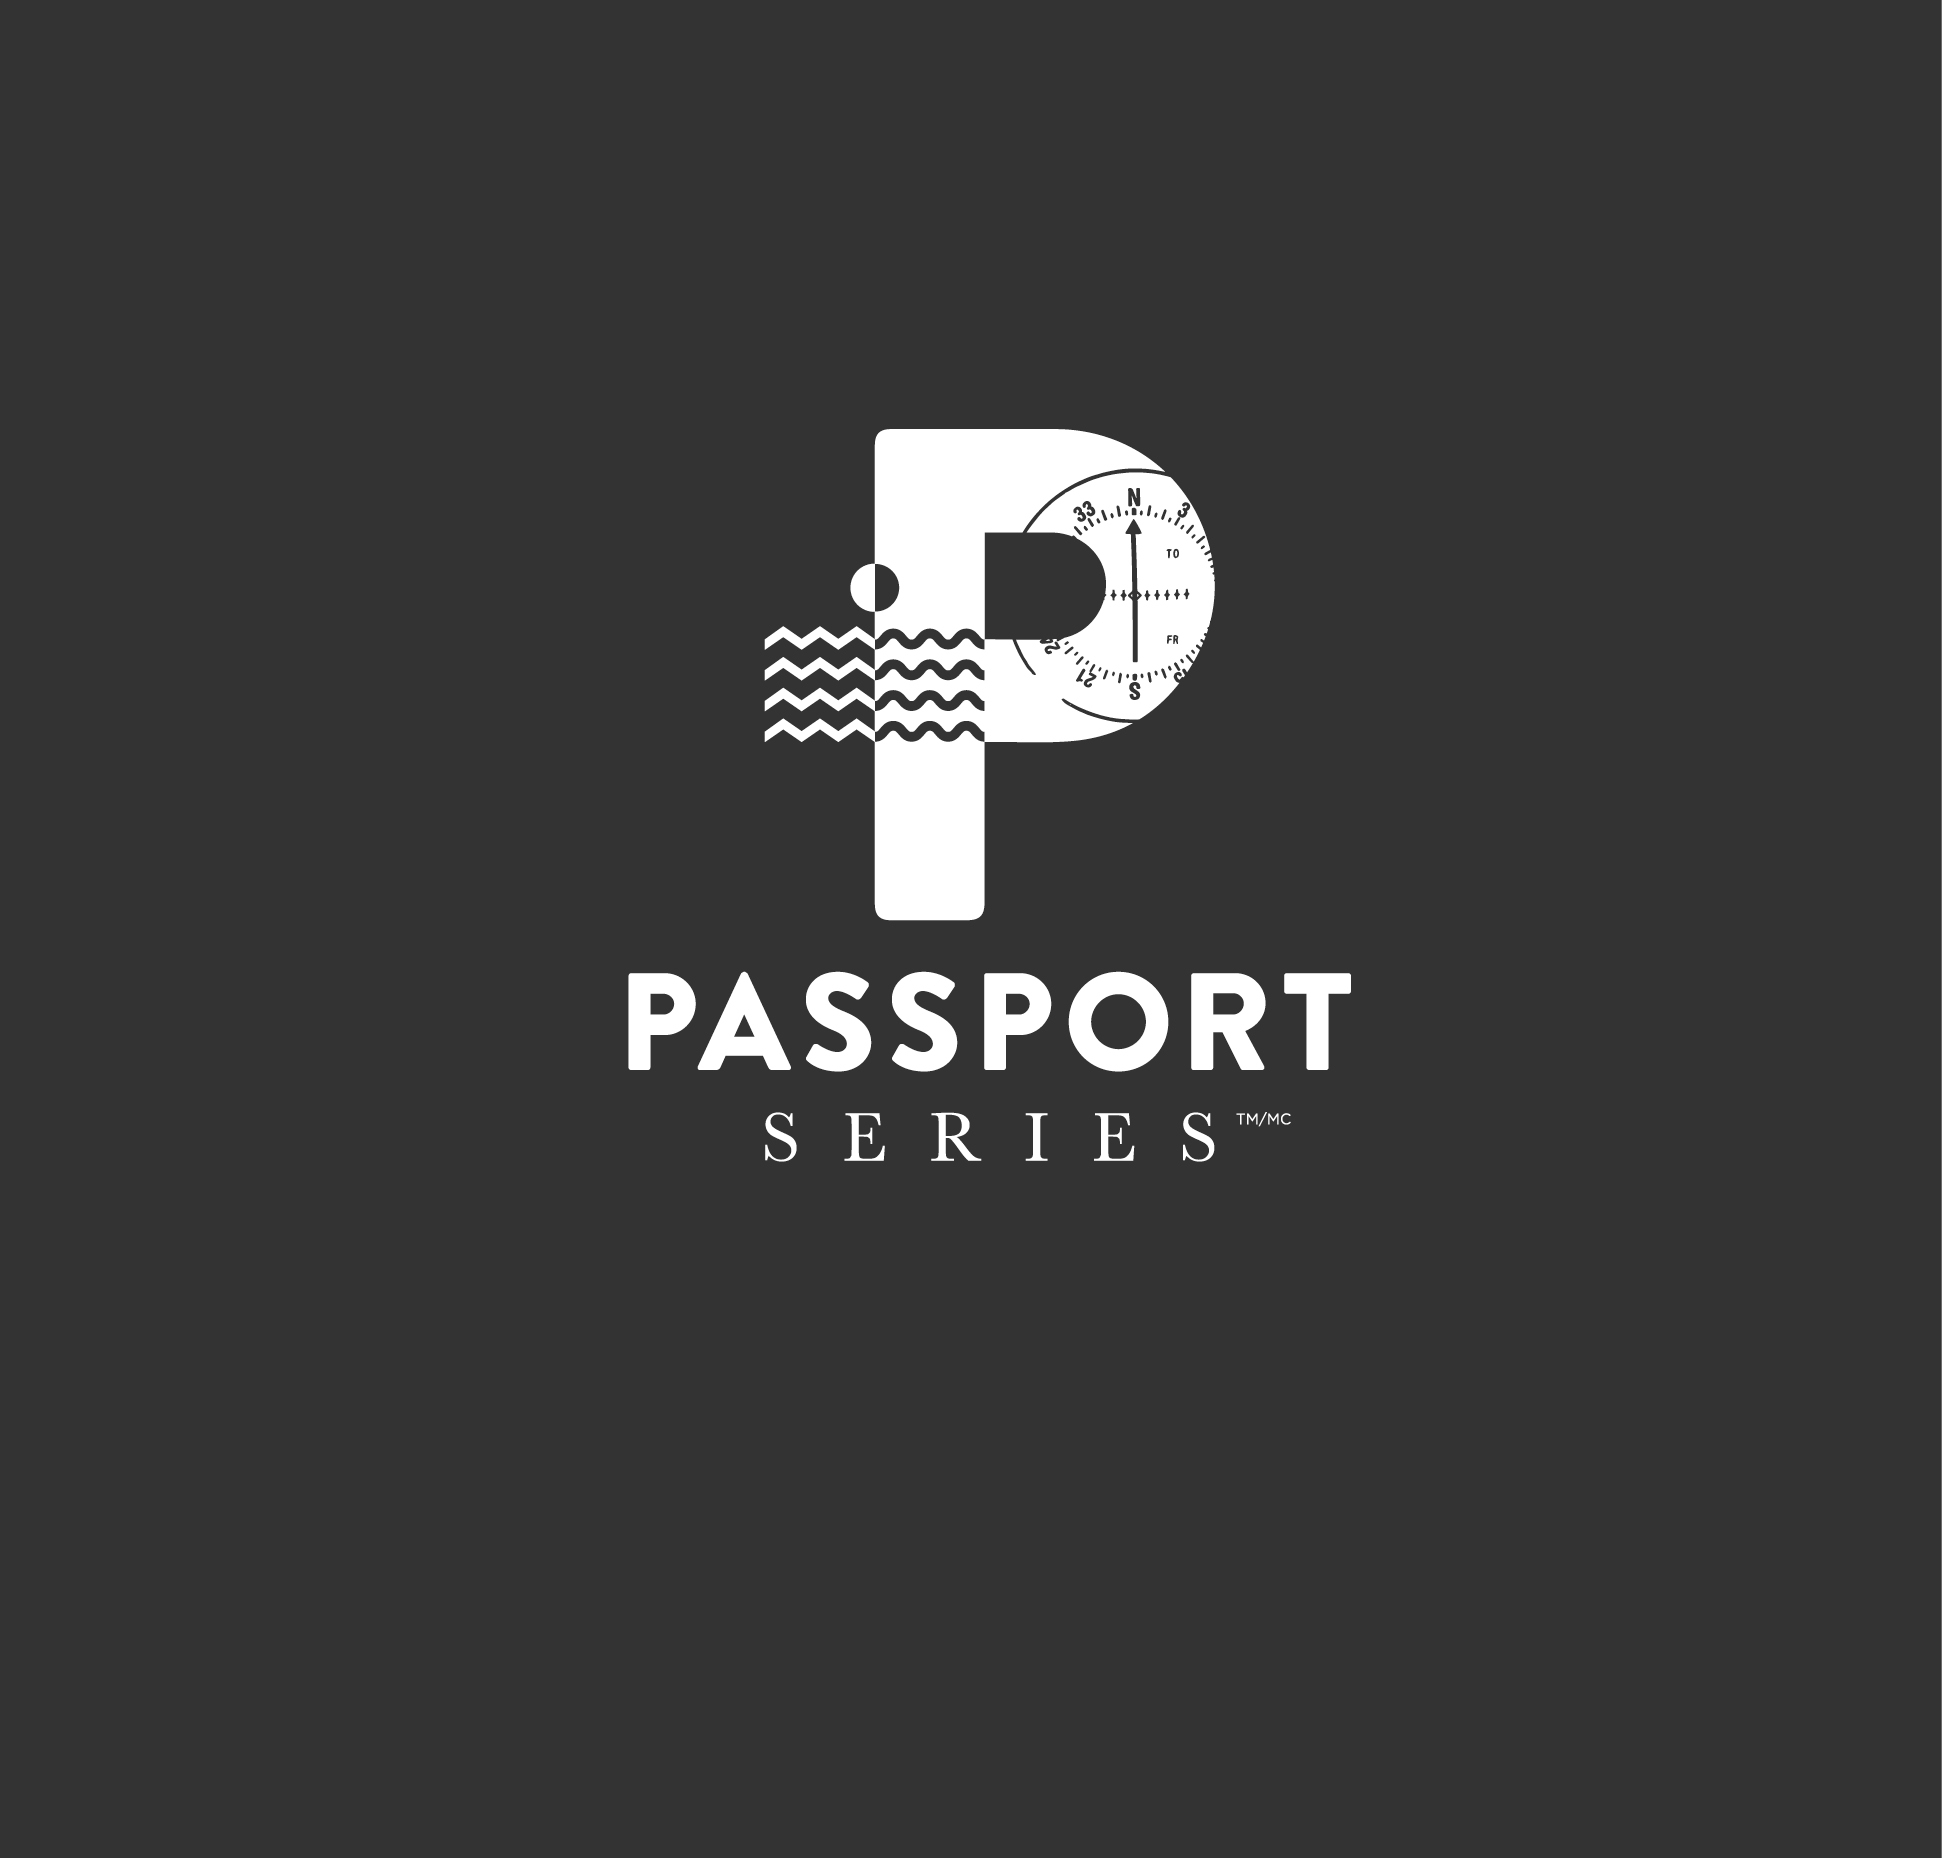 passport-series-vineco-logo-brand-sputnik-design-partners.jpg